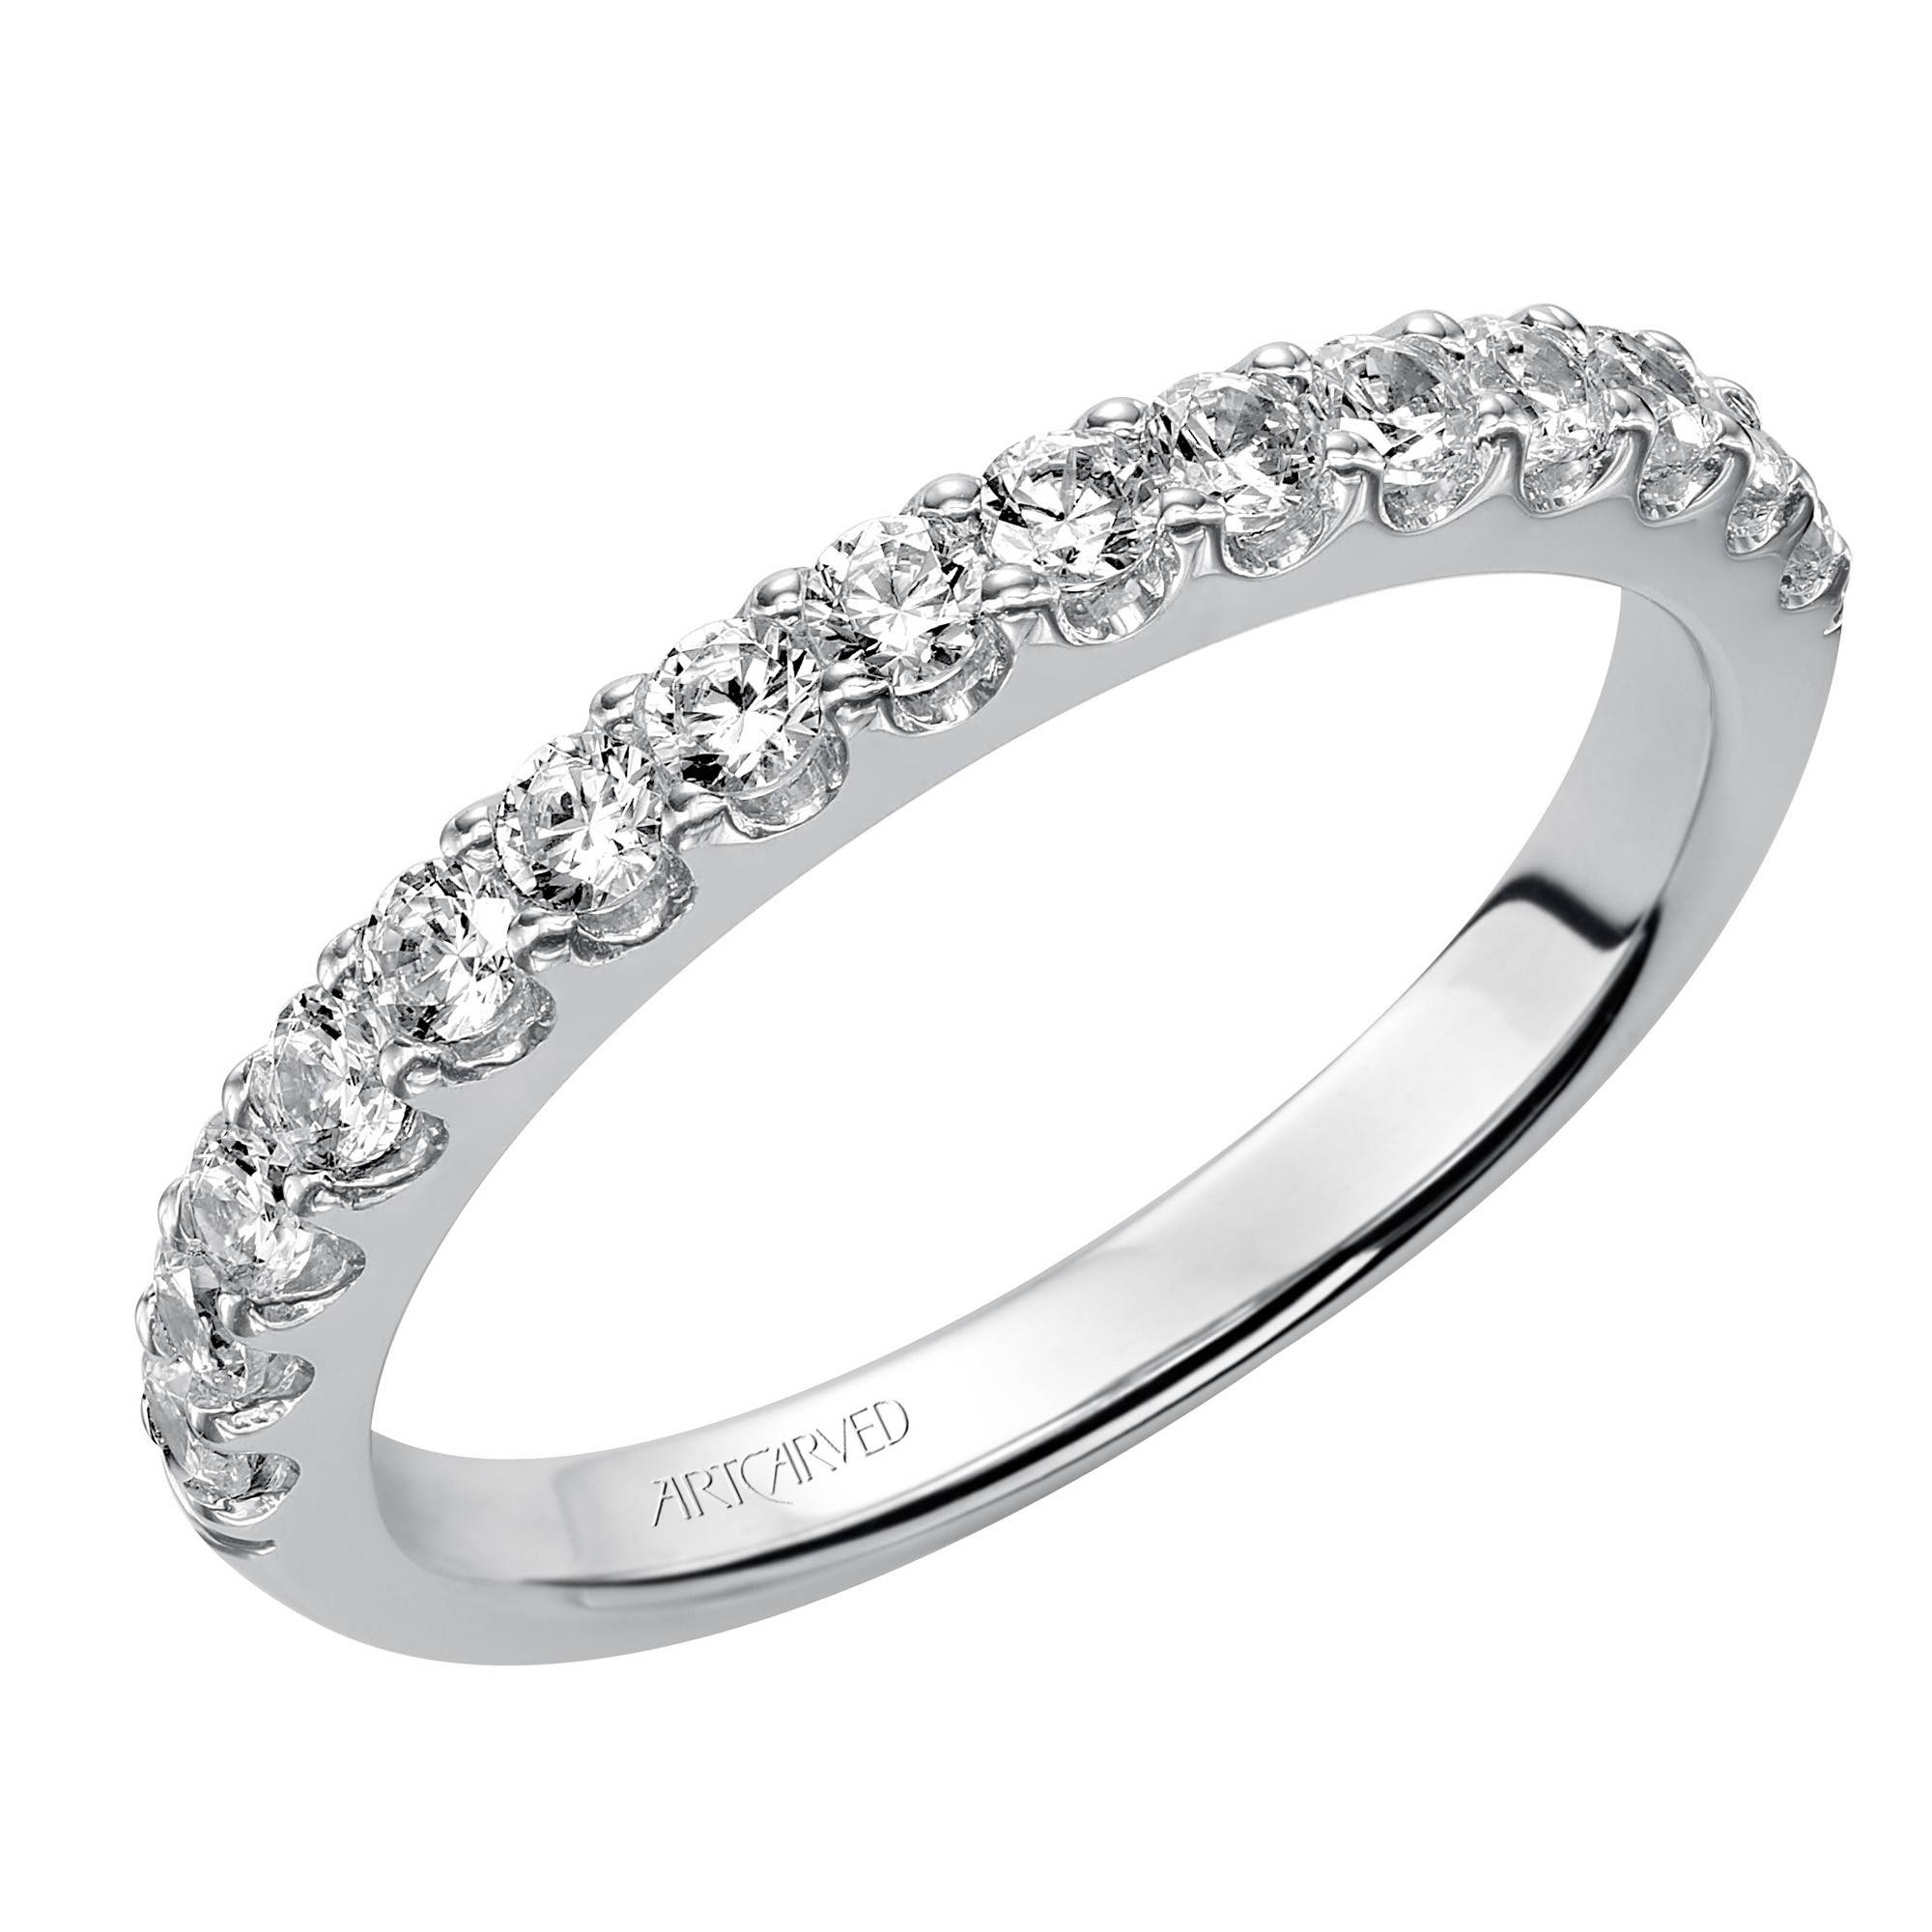 Artcarved Yolanda Diamond Wedding Band In 14kt White Gold (1/2ct Tw) Pertaining To Carved Wedding Bands (View 15 of 15)